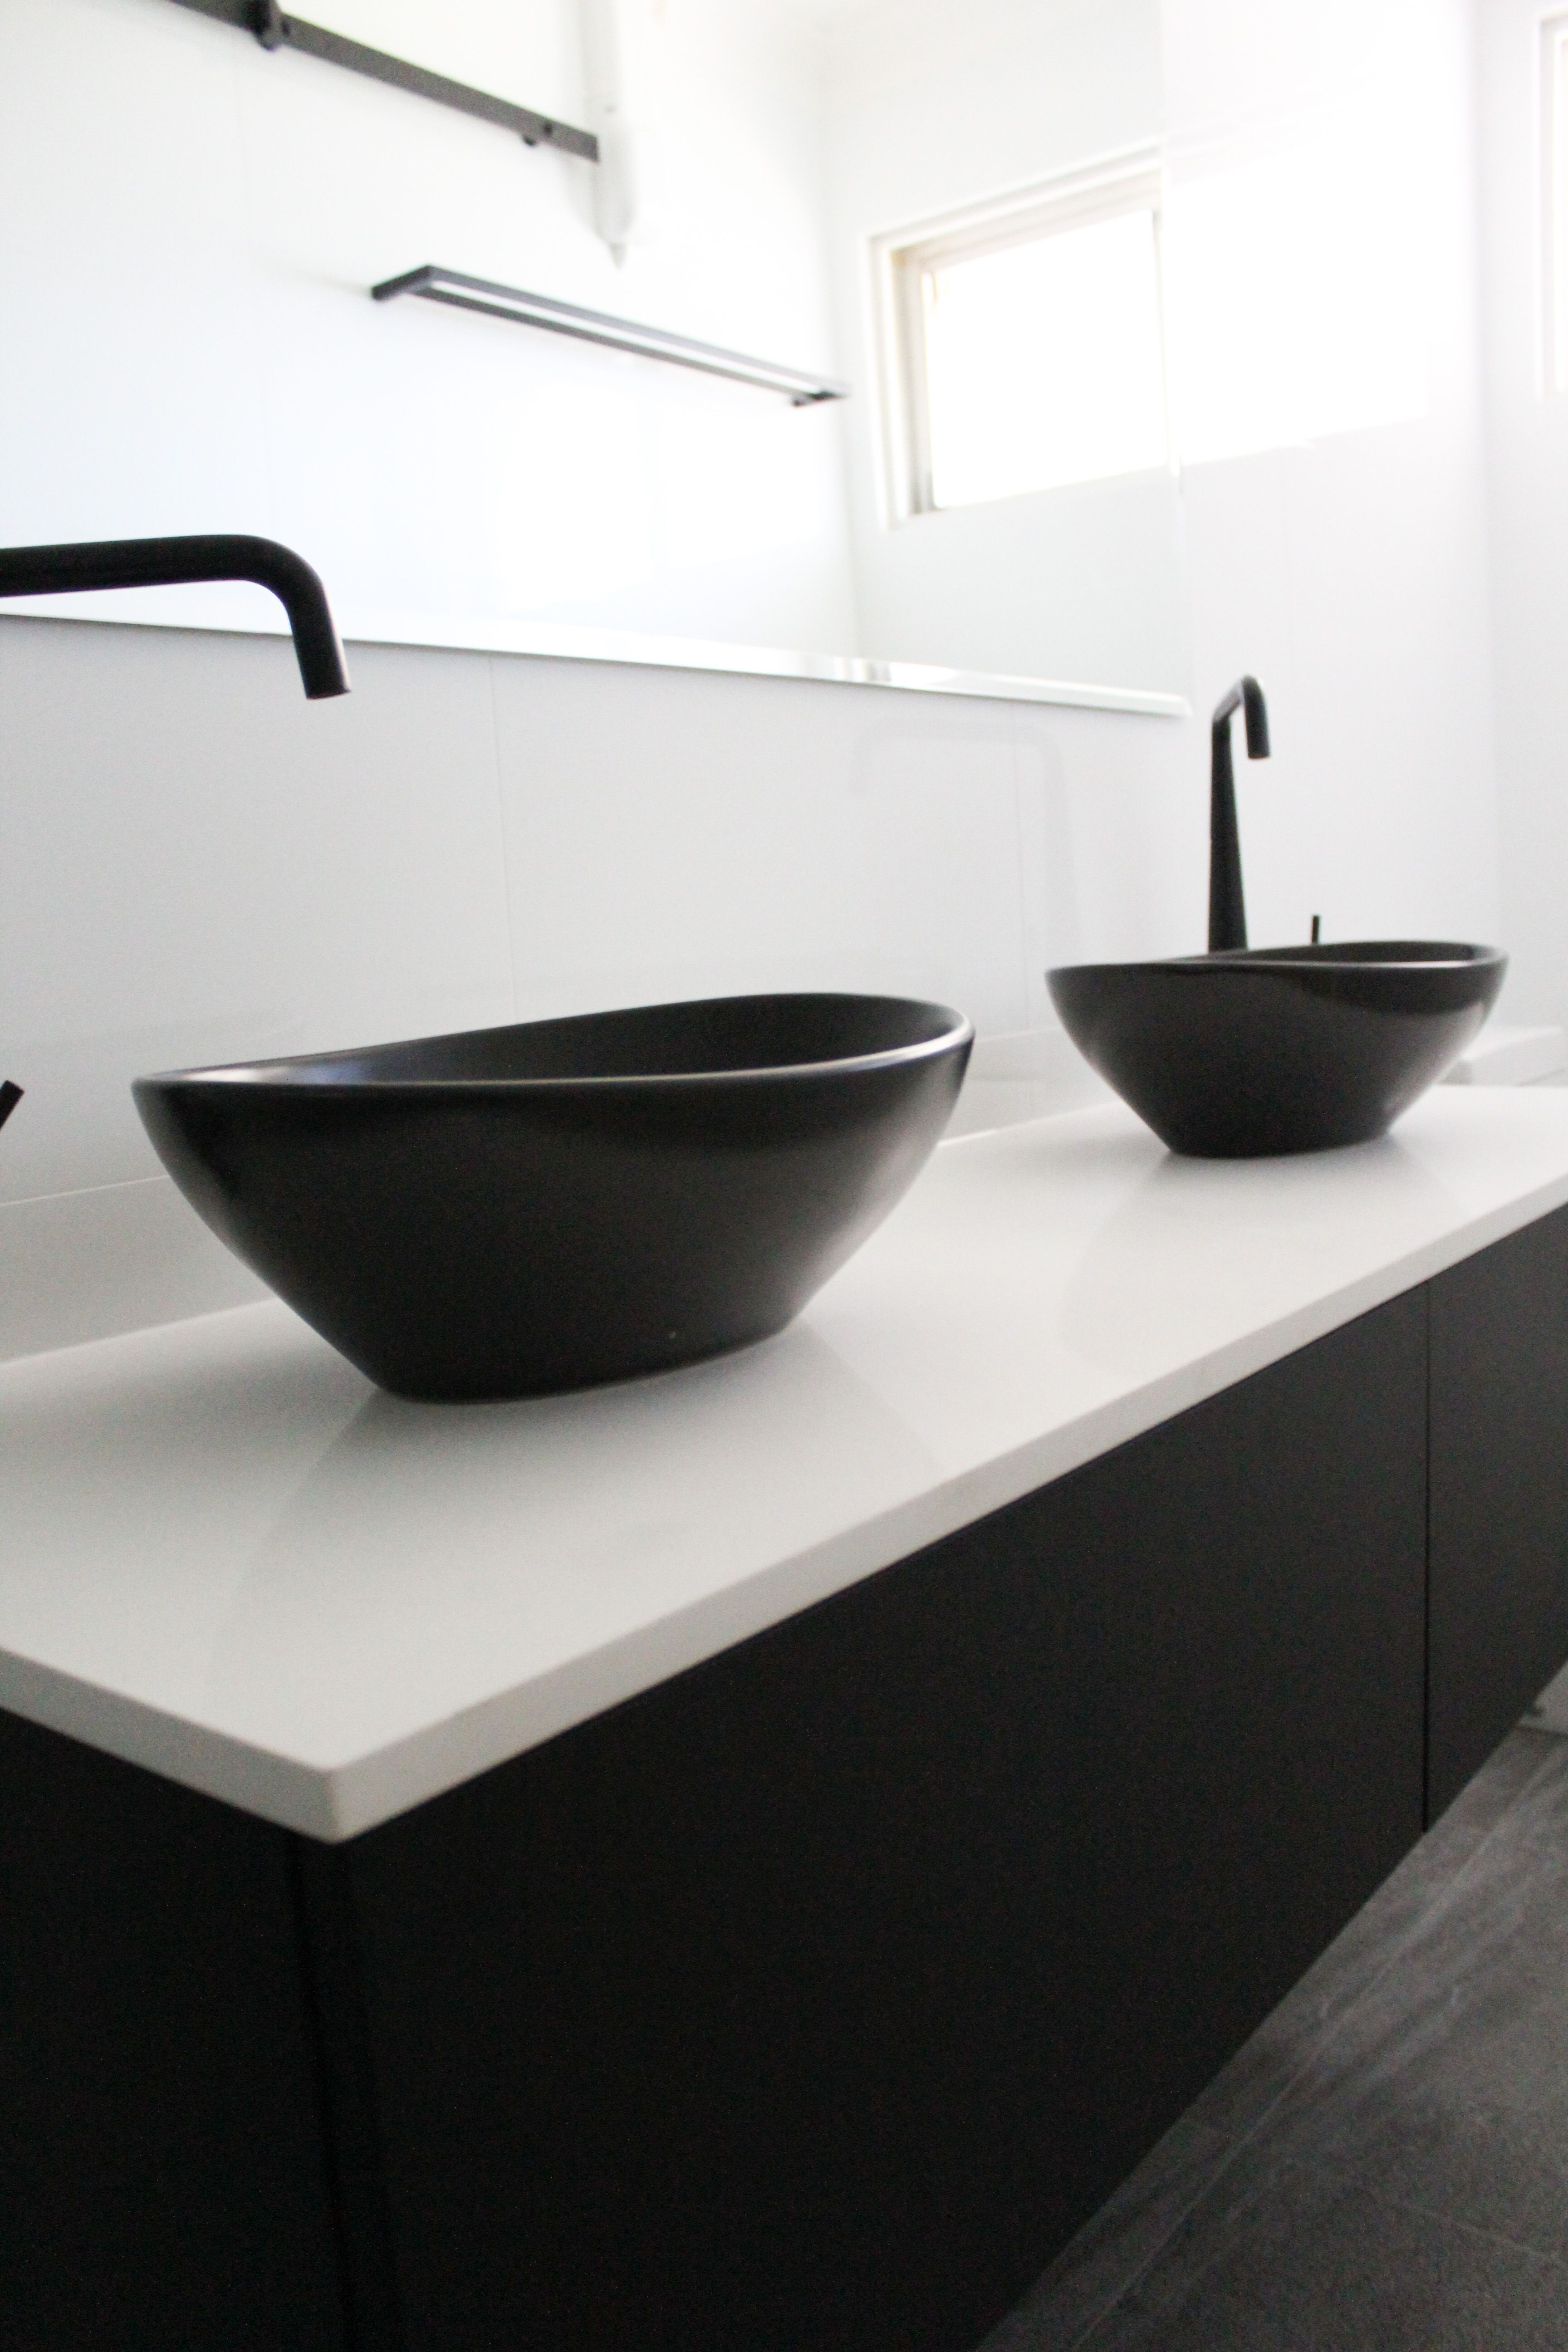 Small Ensuite Black Sinks Wall Hung Vanity White Benchtop Back To Wall Toilet On The Ball Bathrooms Black Vanity Bathroom Black Sink Wall Hung Vanity